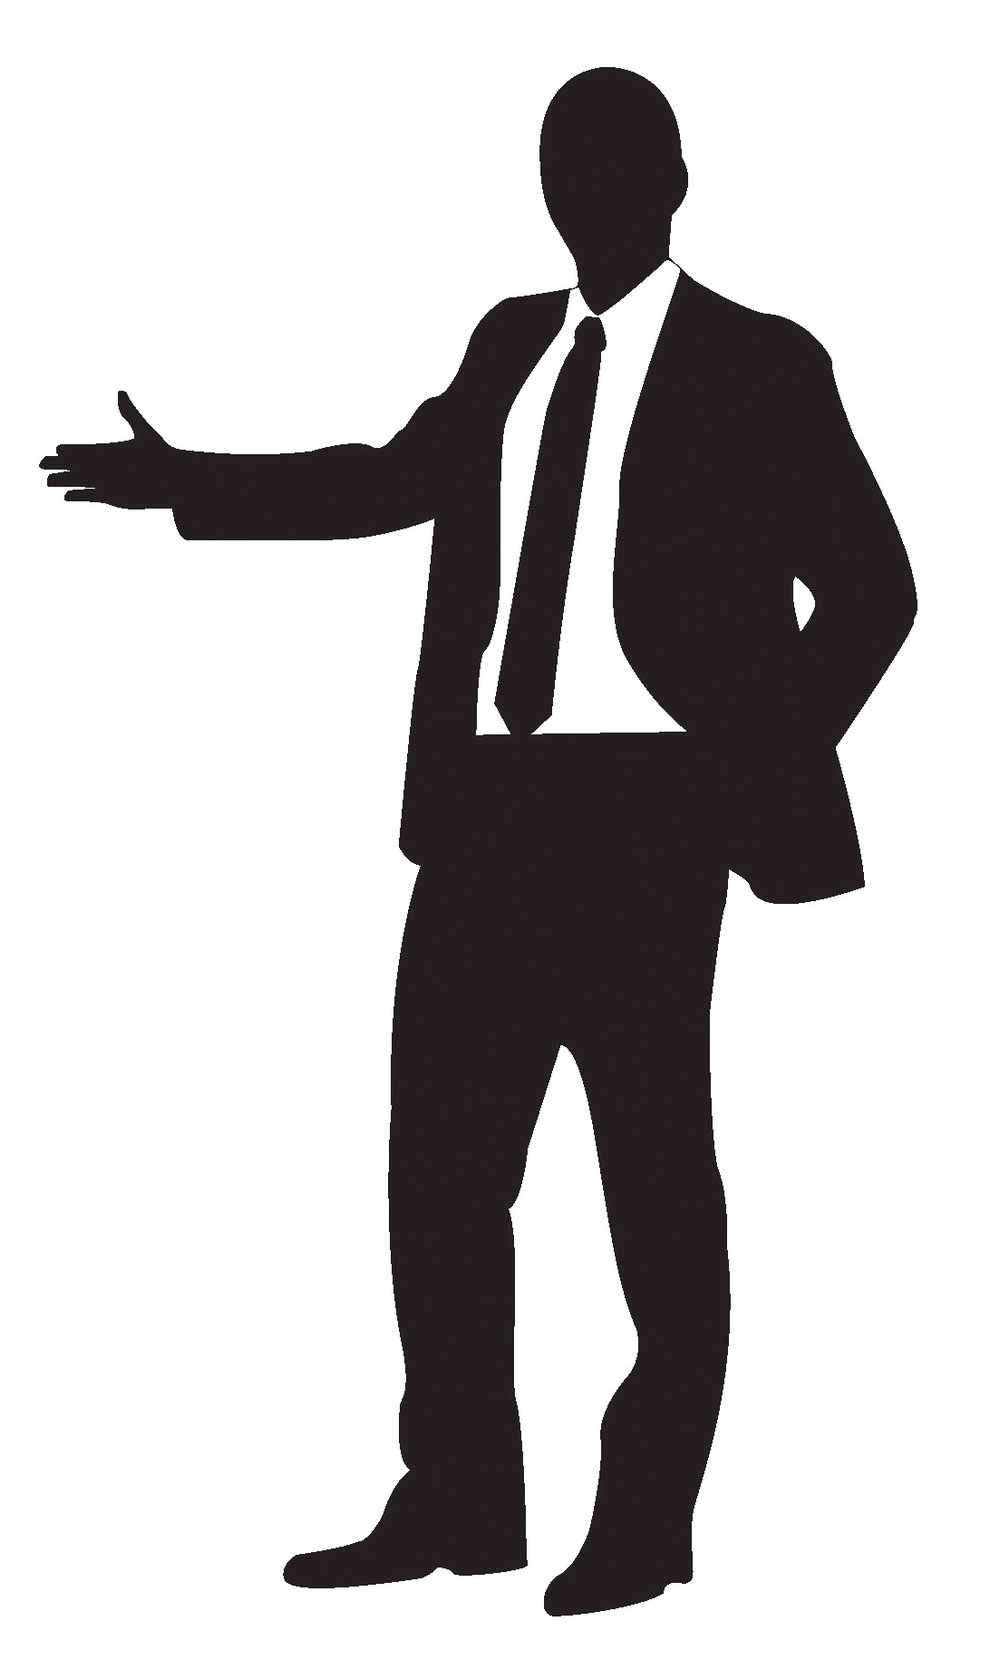 there-is-20-black-business-man-silhouette-free-cliparts-all-used-for-1258976.jpg